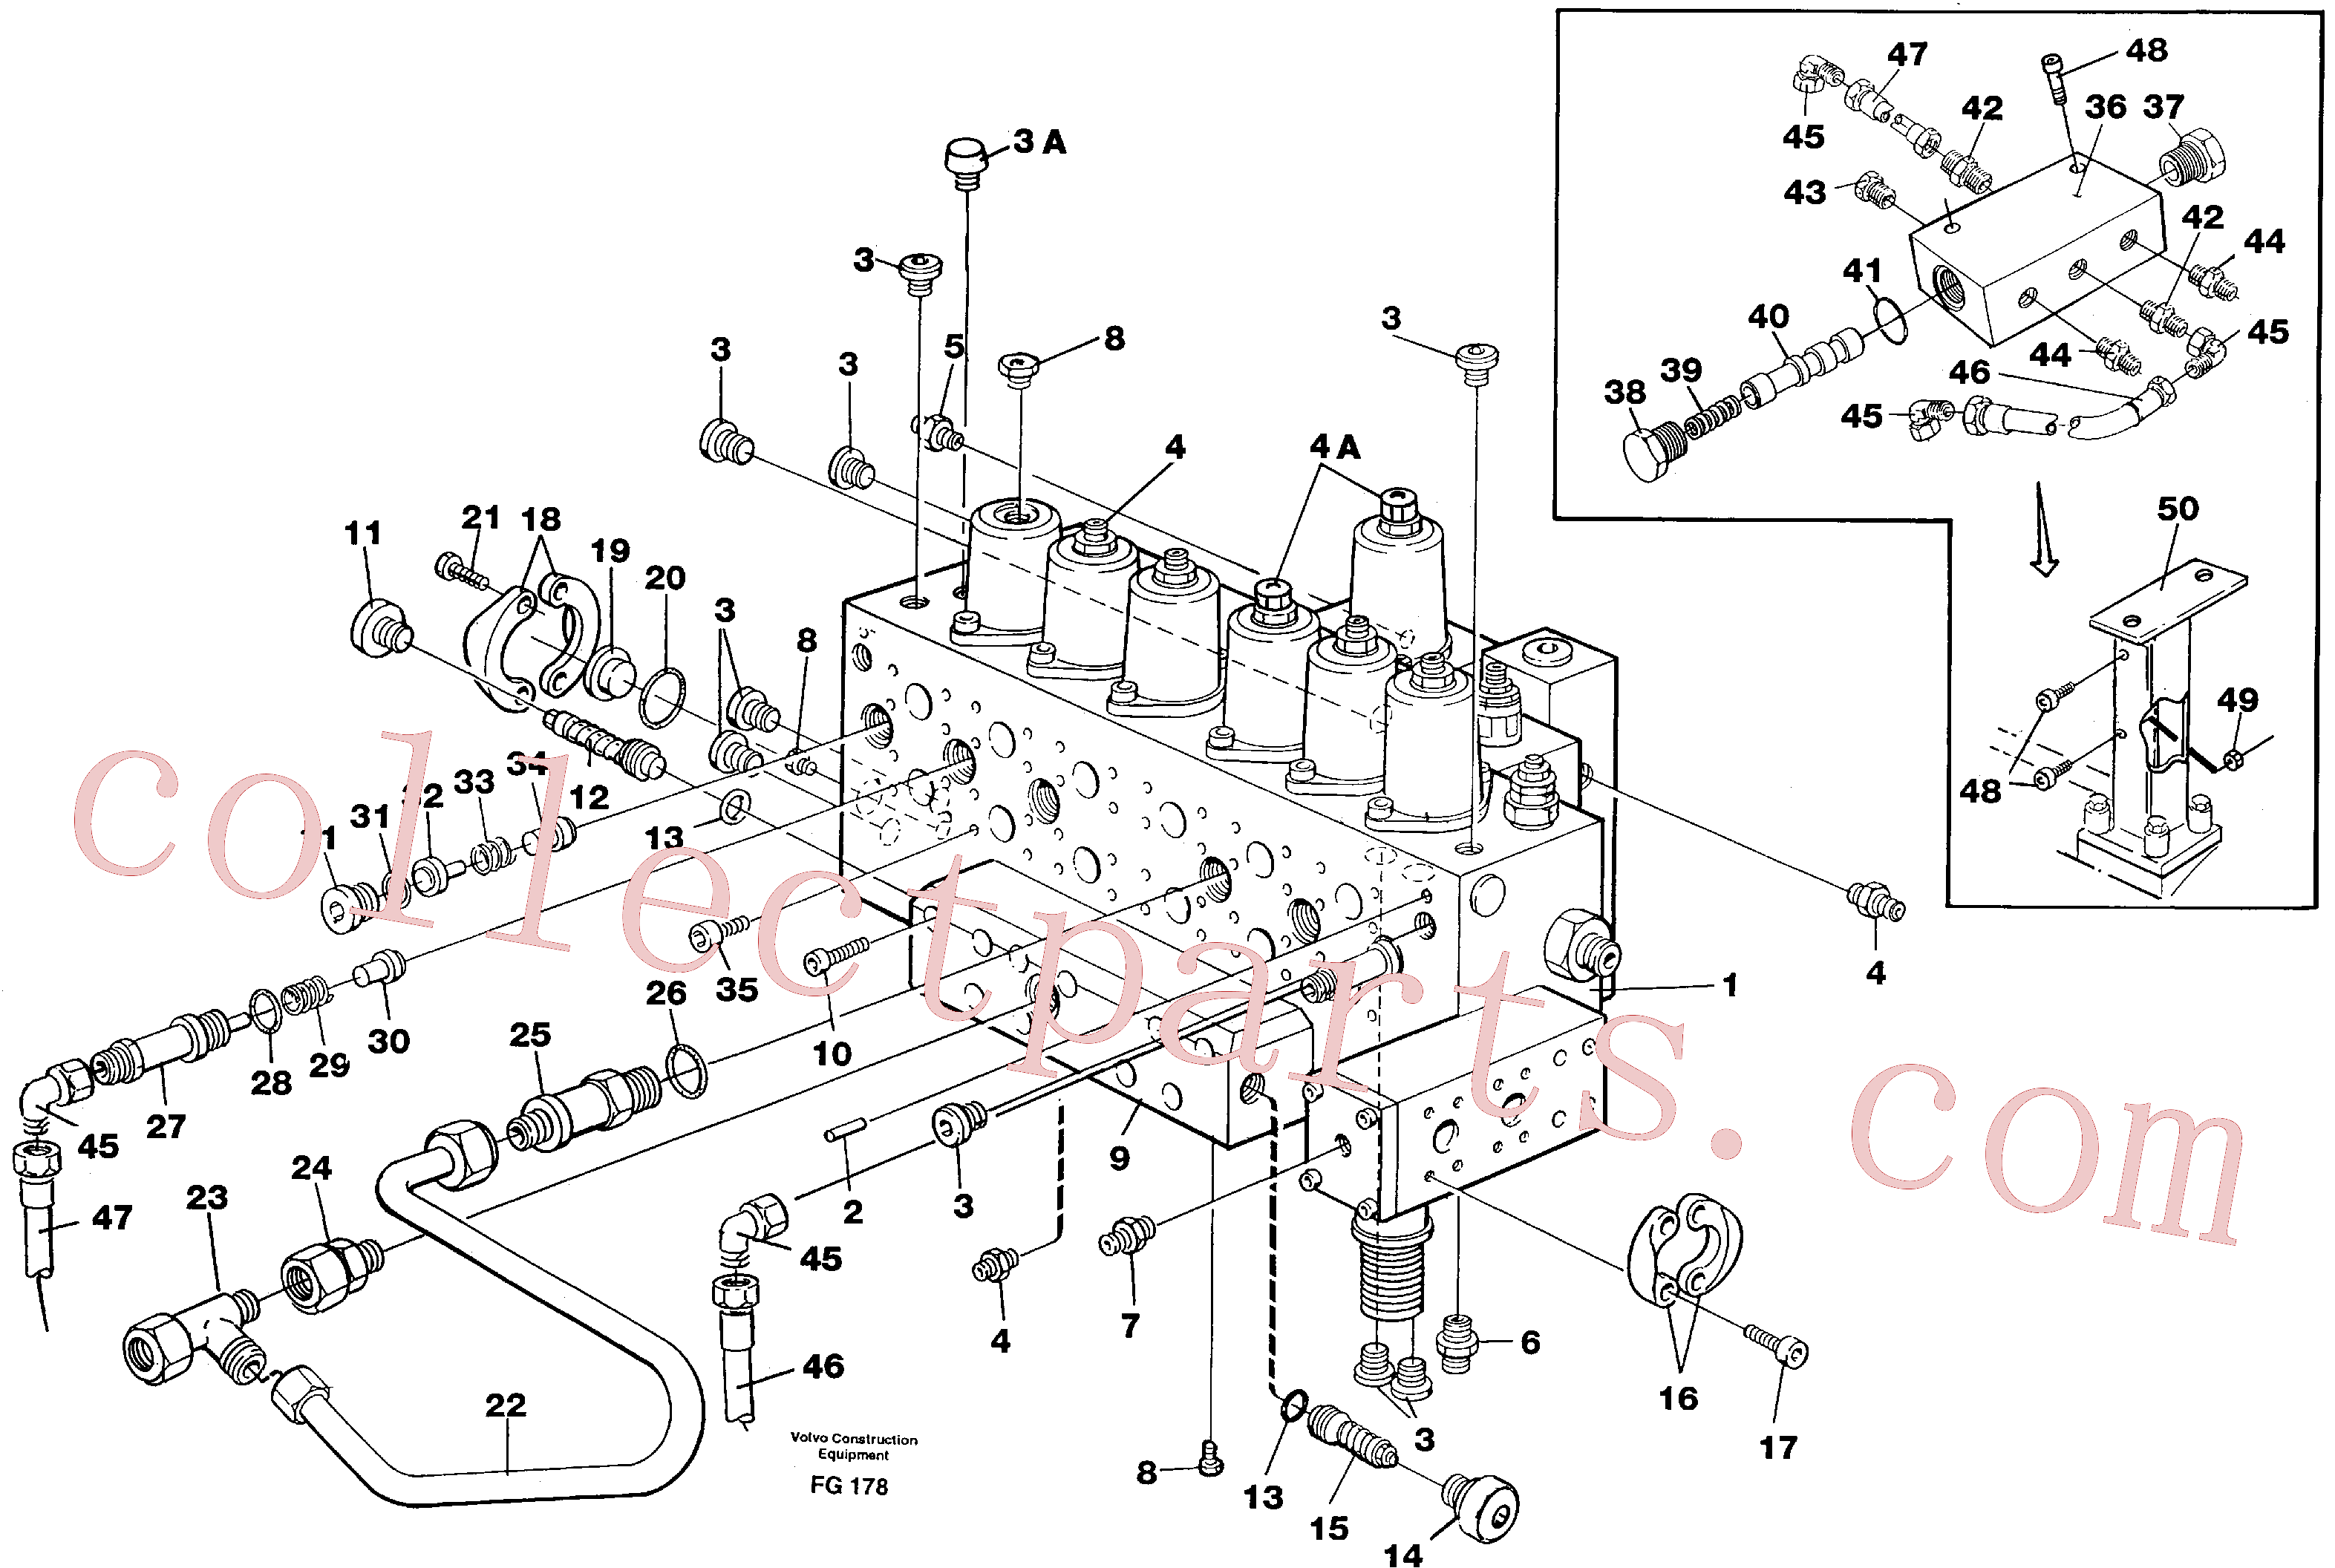 VOE14211065 for Volvo Main valve assembly, tubes connections, assembly bloc(FG178 assembly)